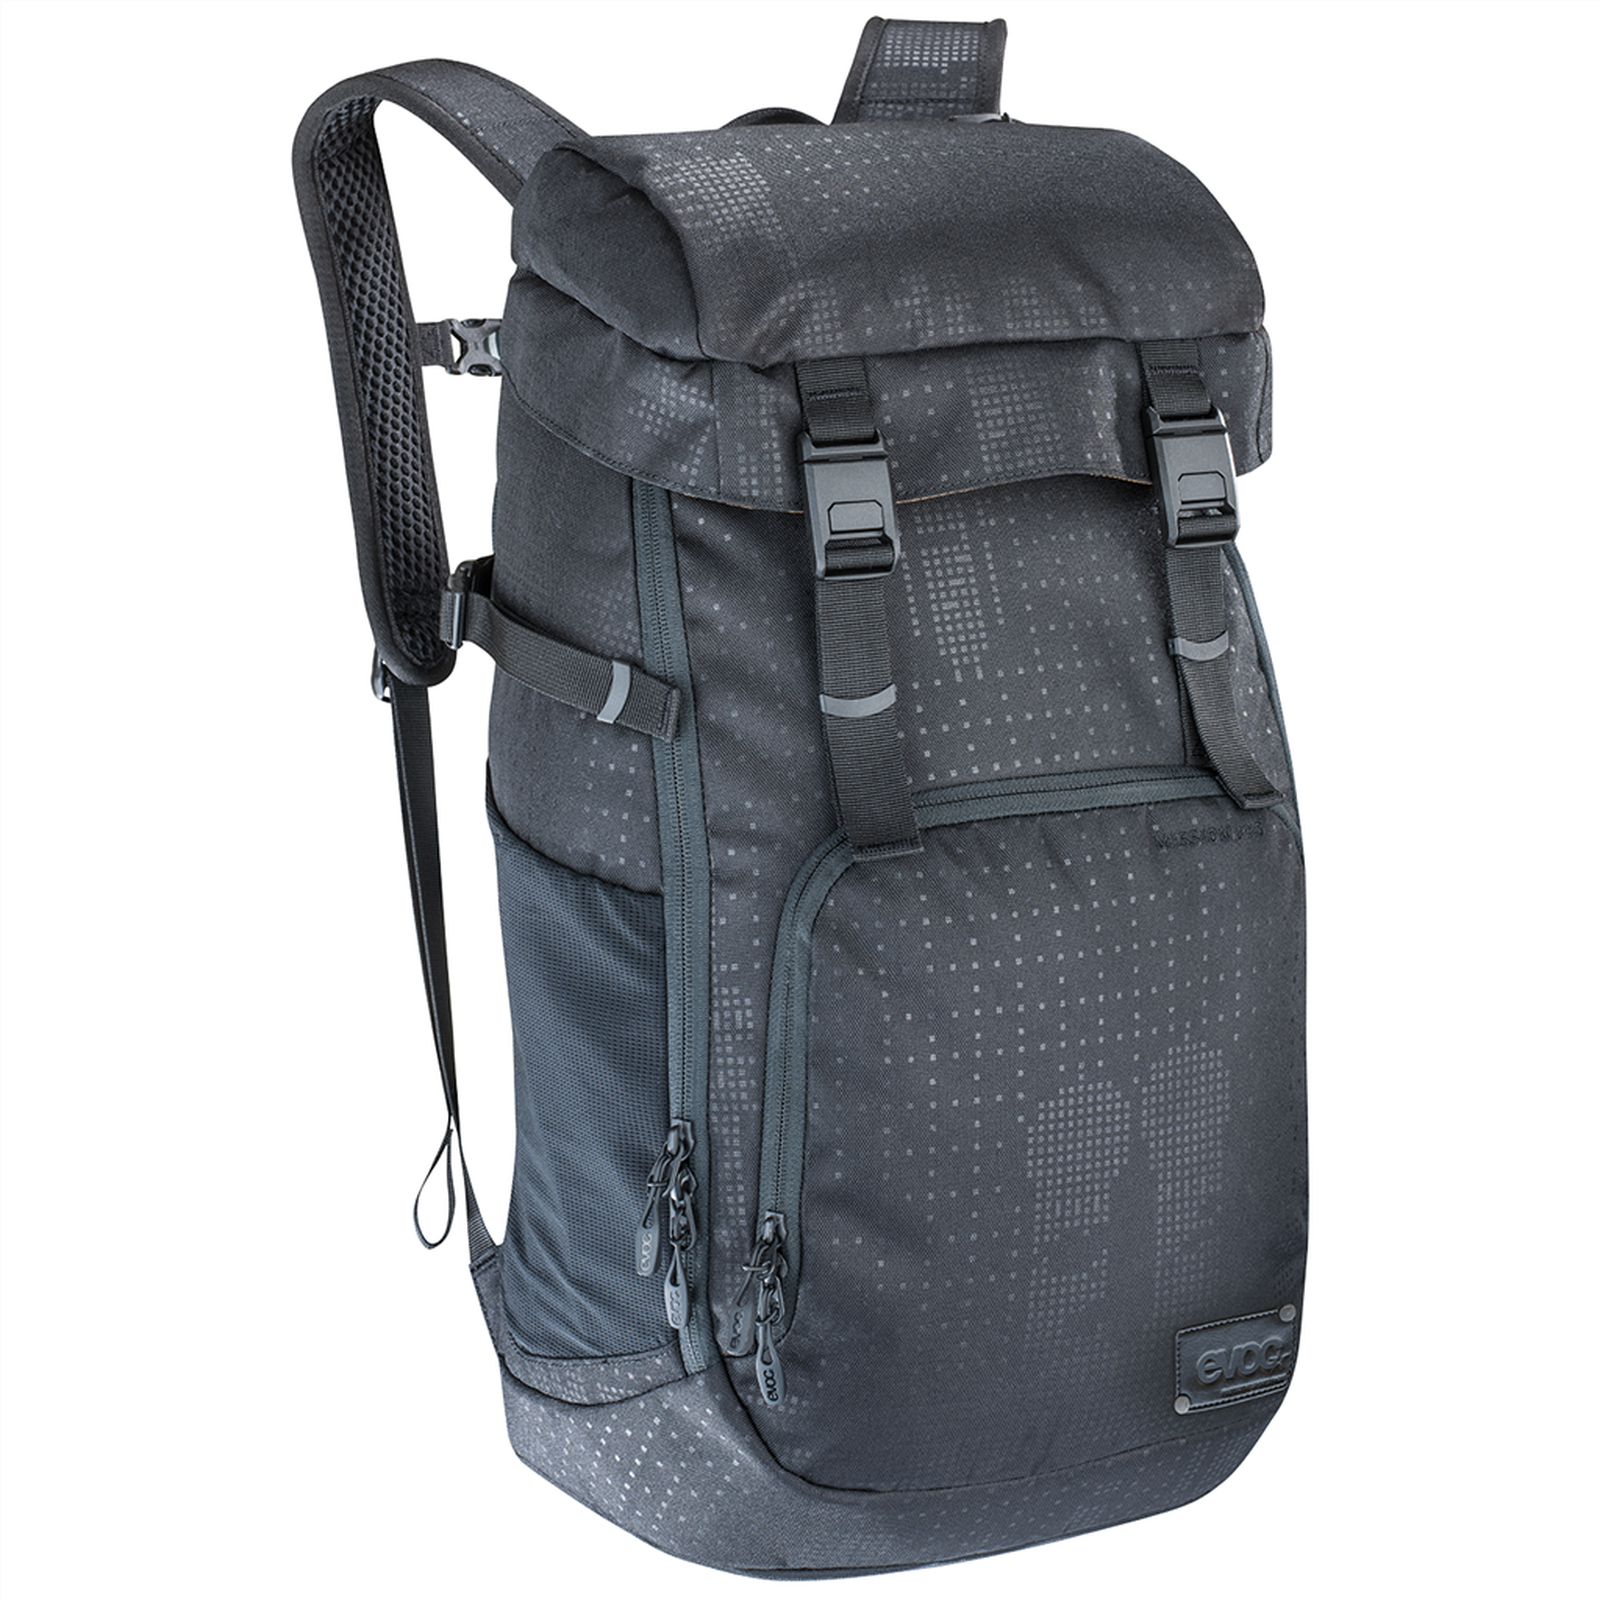 Mission Pro Backpack